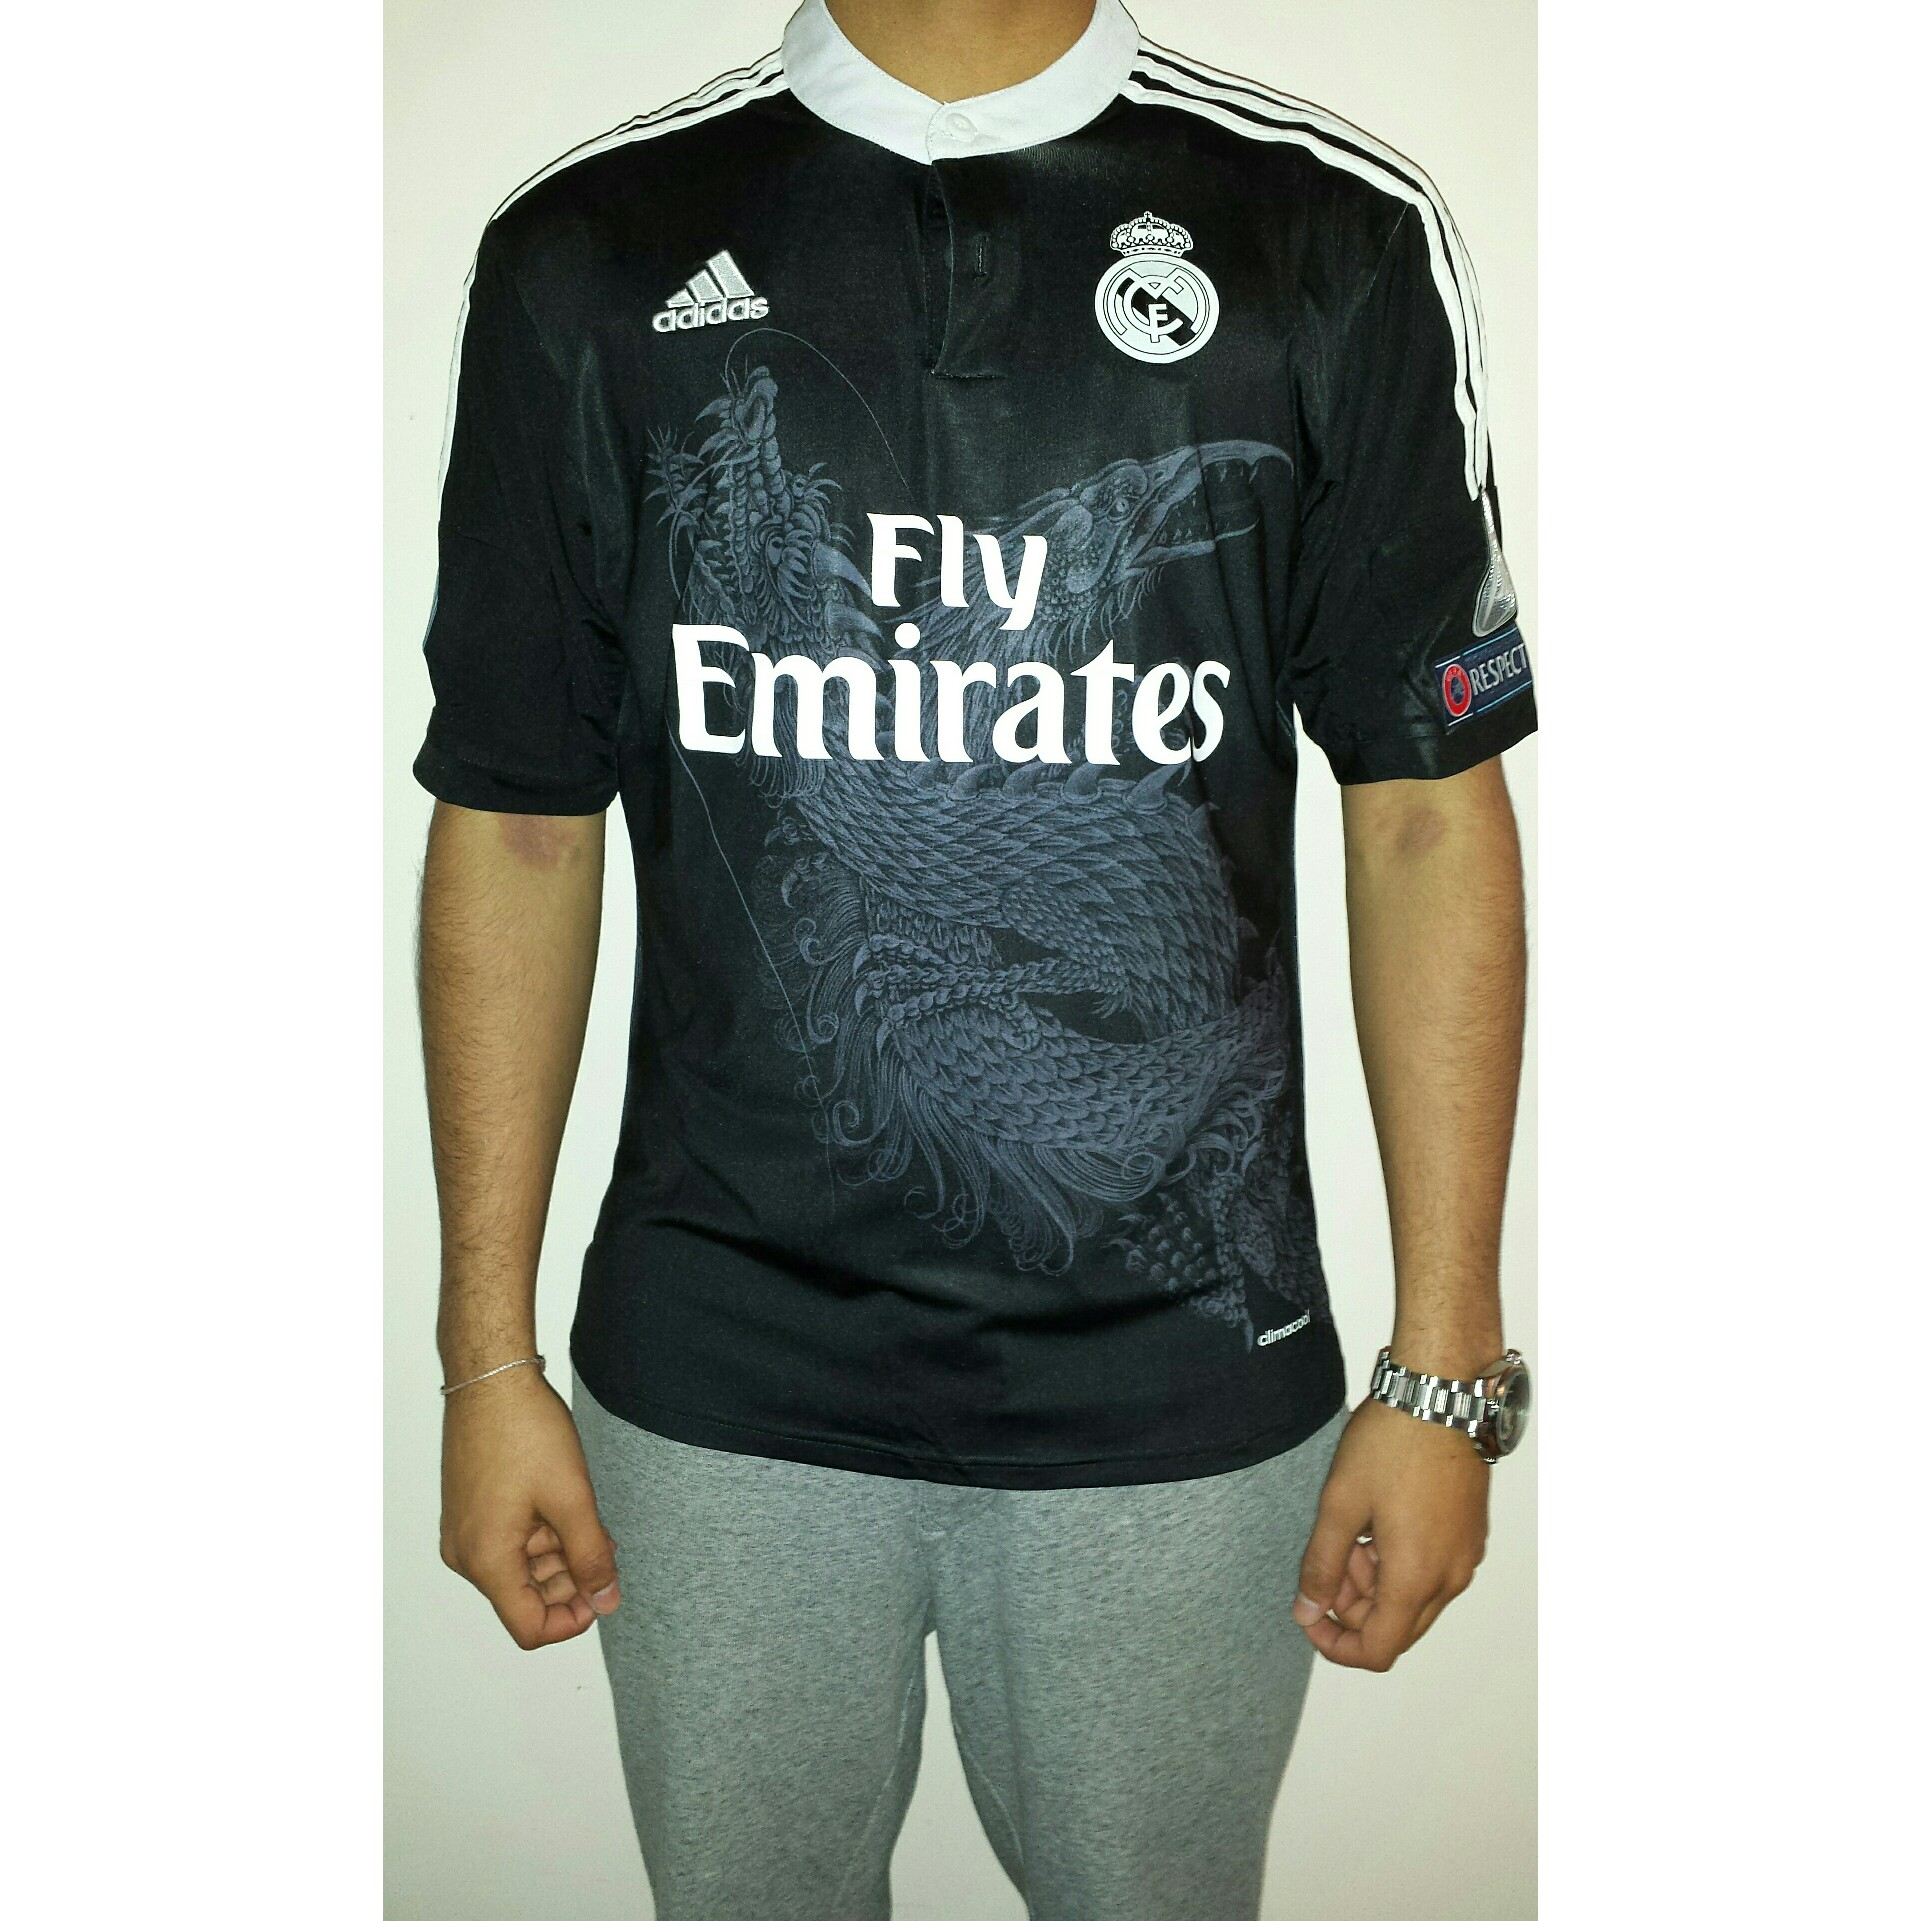 superior quality f52c1 15c82 Real Madrid 14-15 third kit. New with tags. Black... - Depop